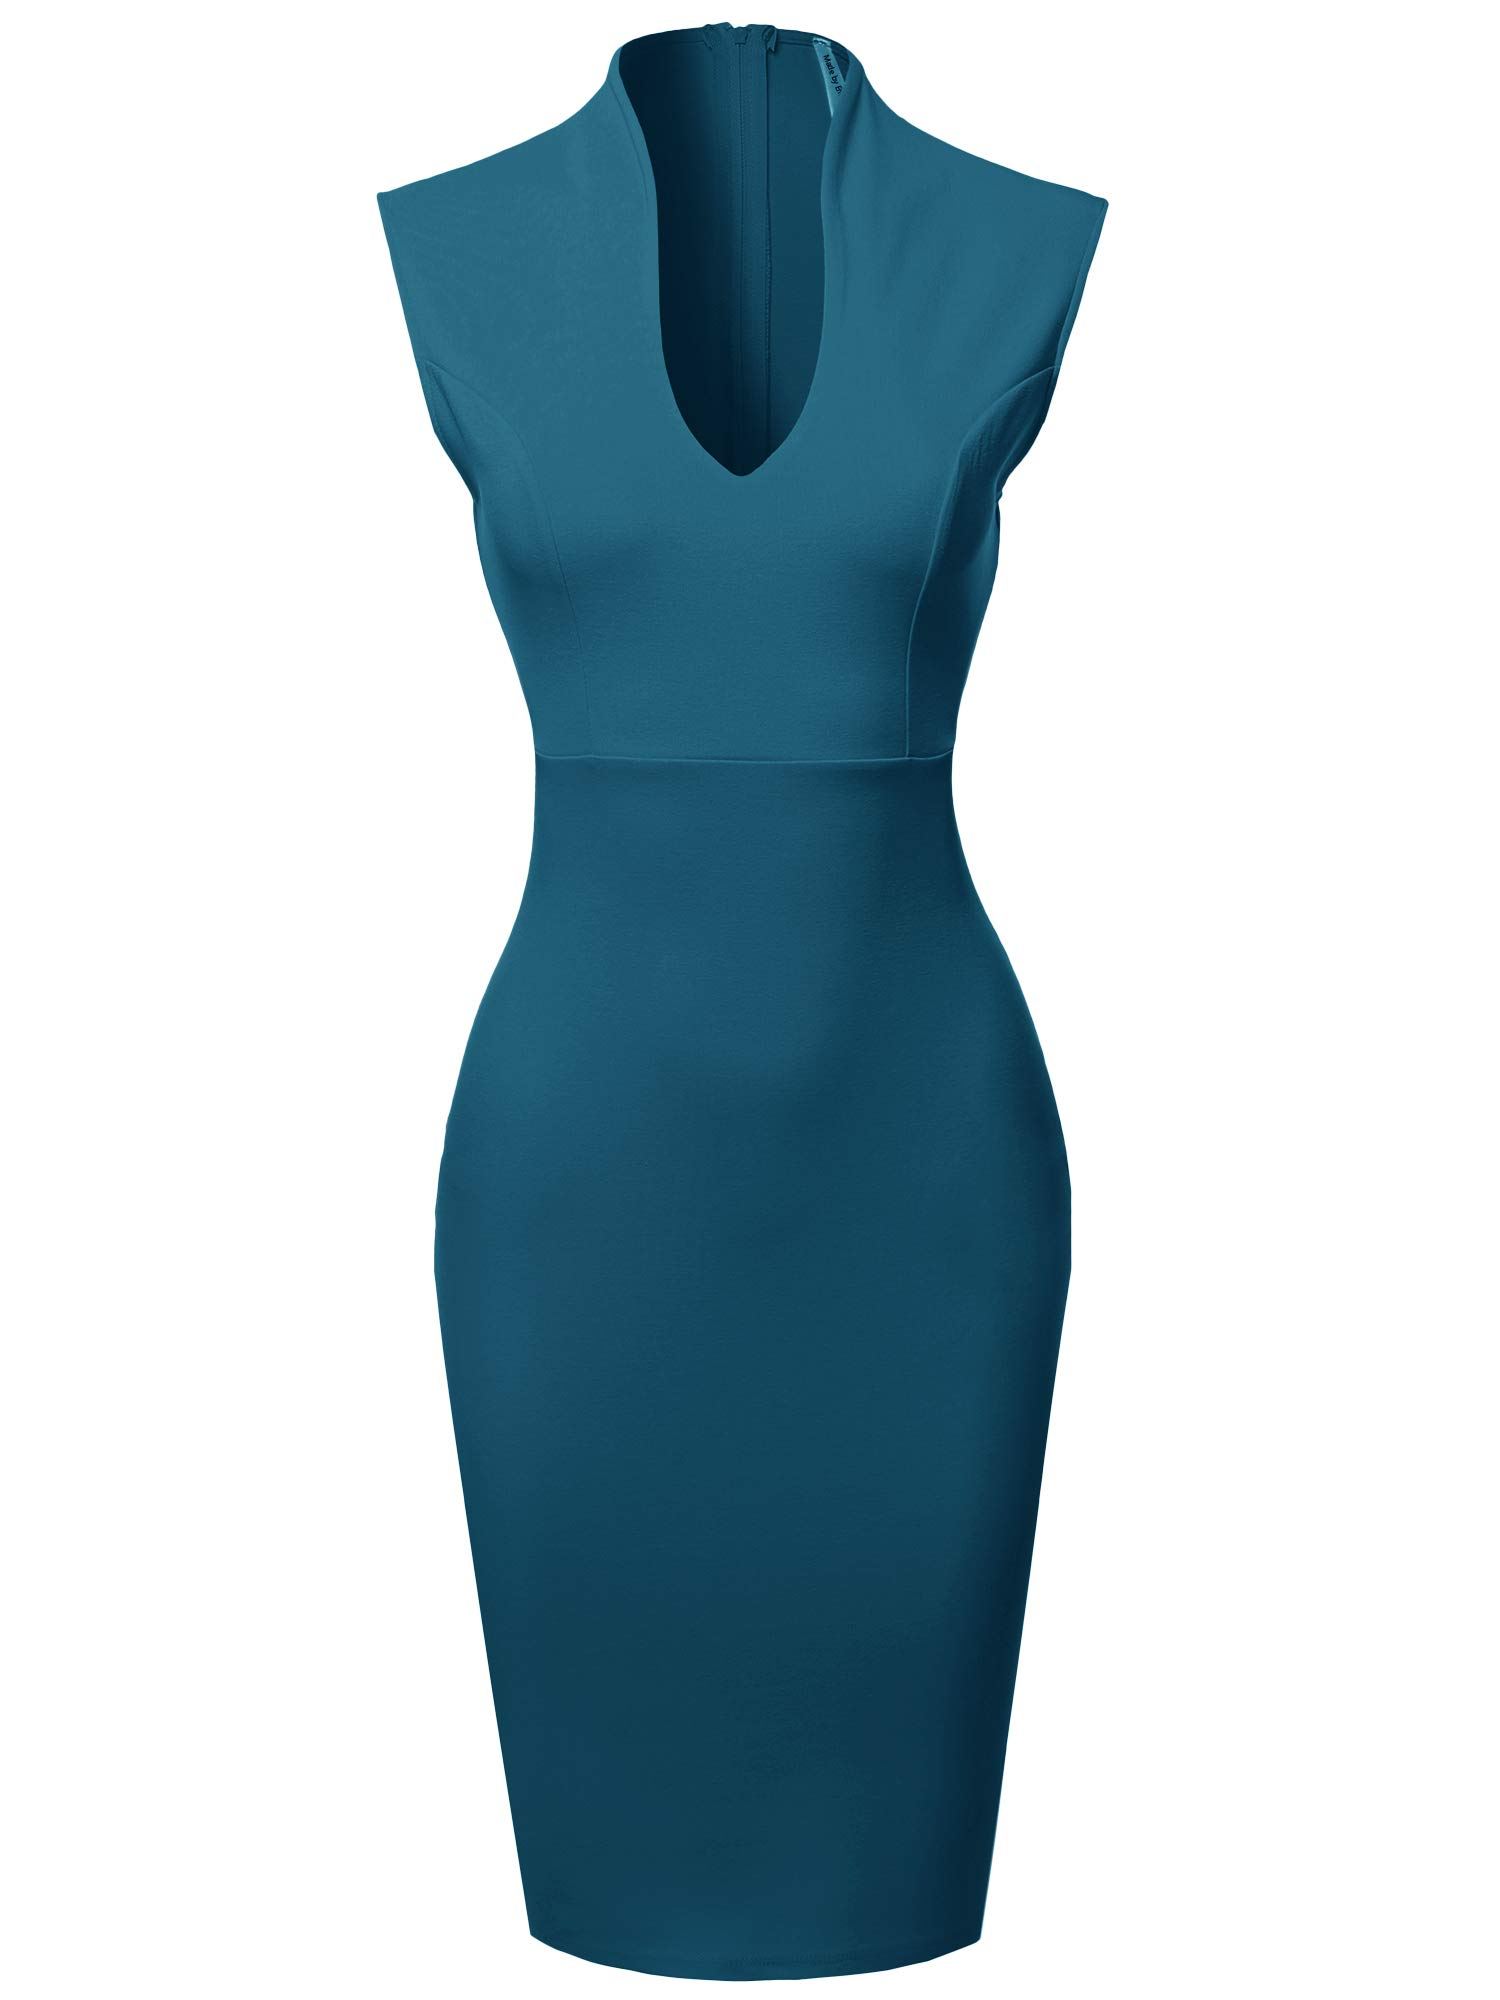 Available at Amazon: Made by Emma Women's Fitted Elegant Sleeveless Formal Cocktail Party Pencil Midi Dress